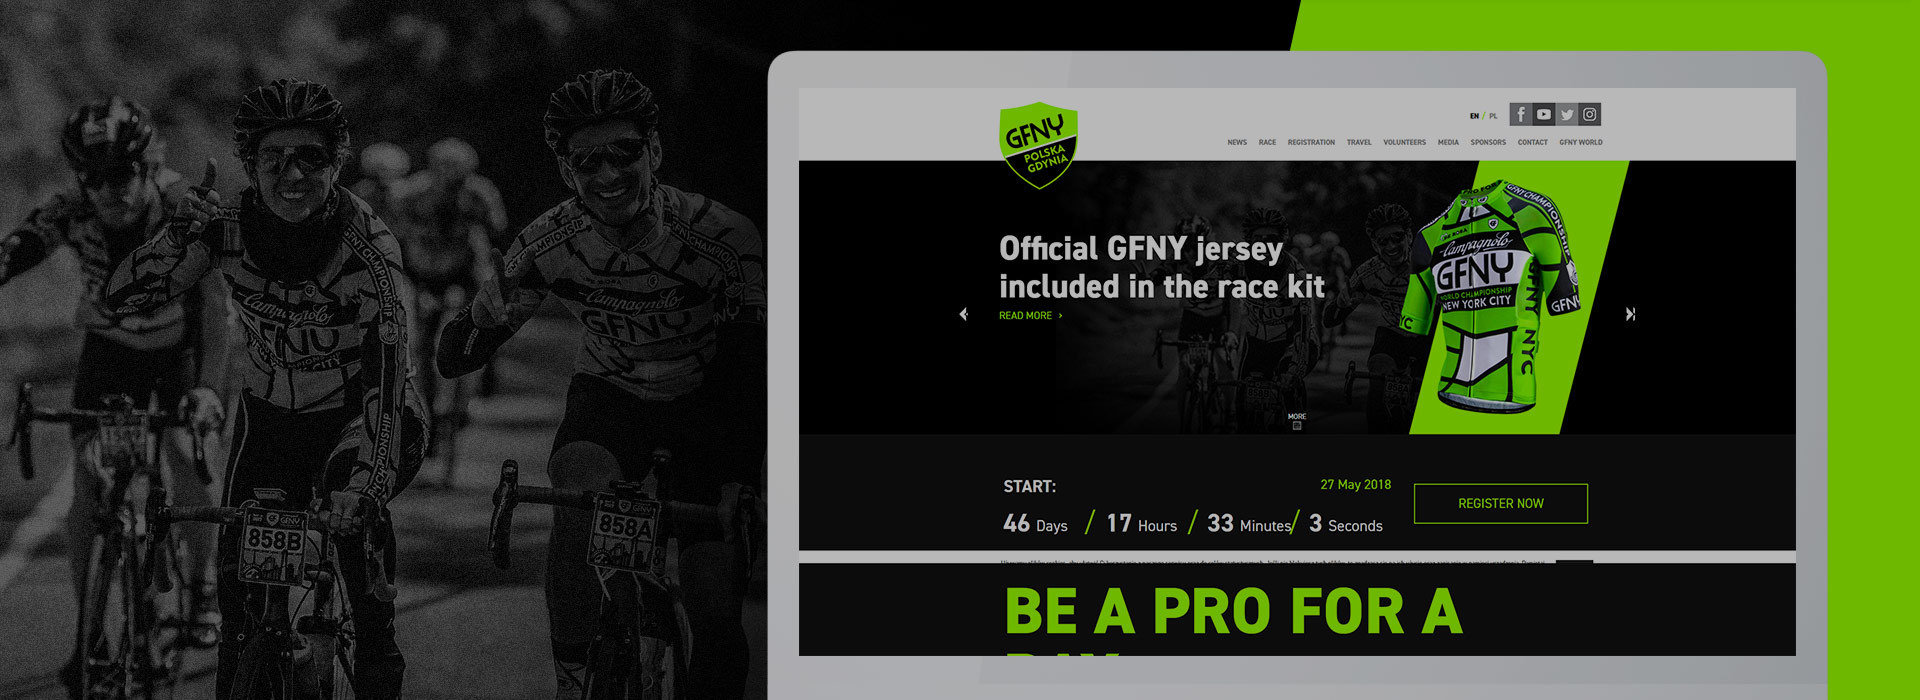 GFNY Poland - A prestigious cycling race in Gdynia.